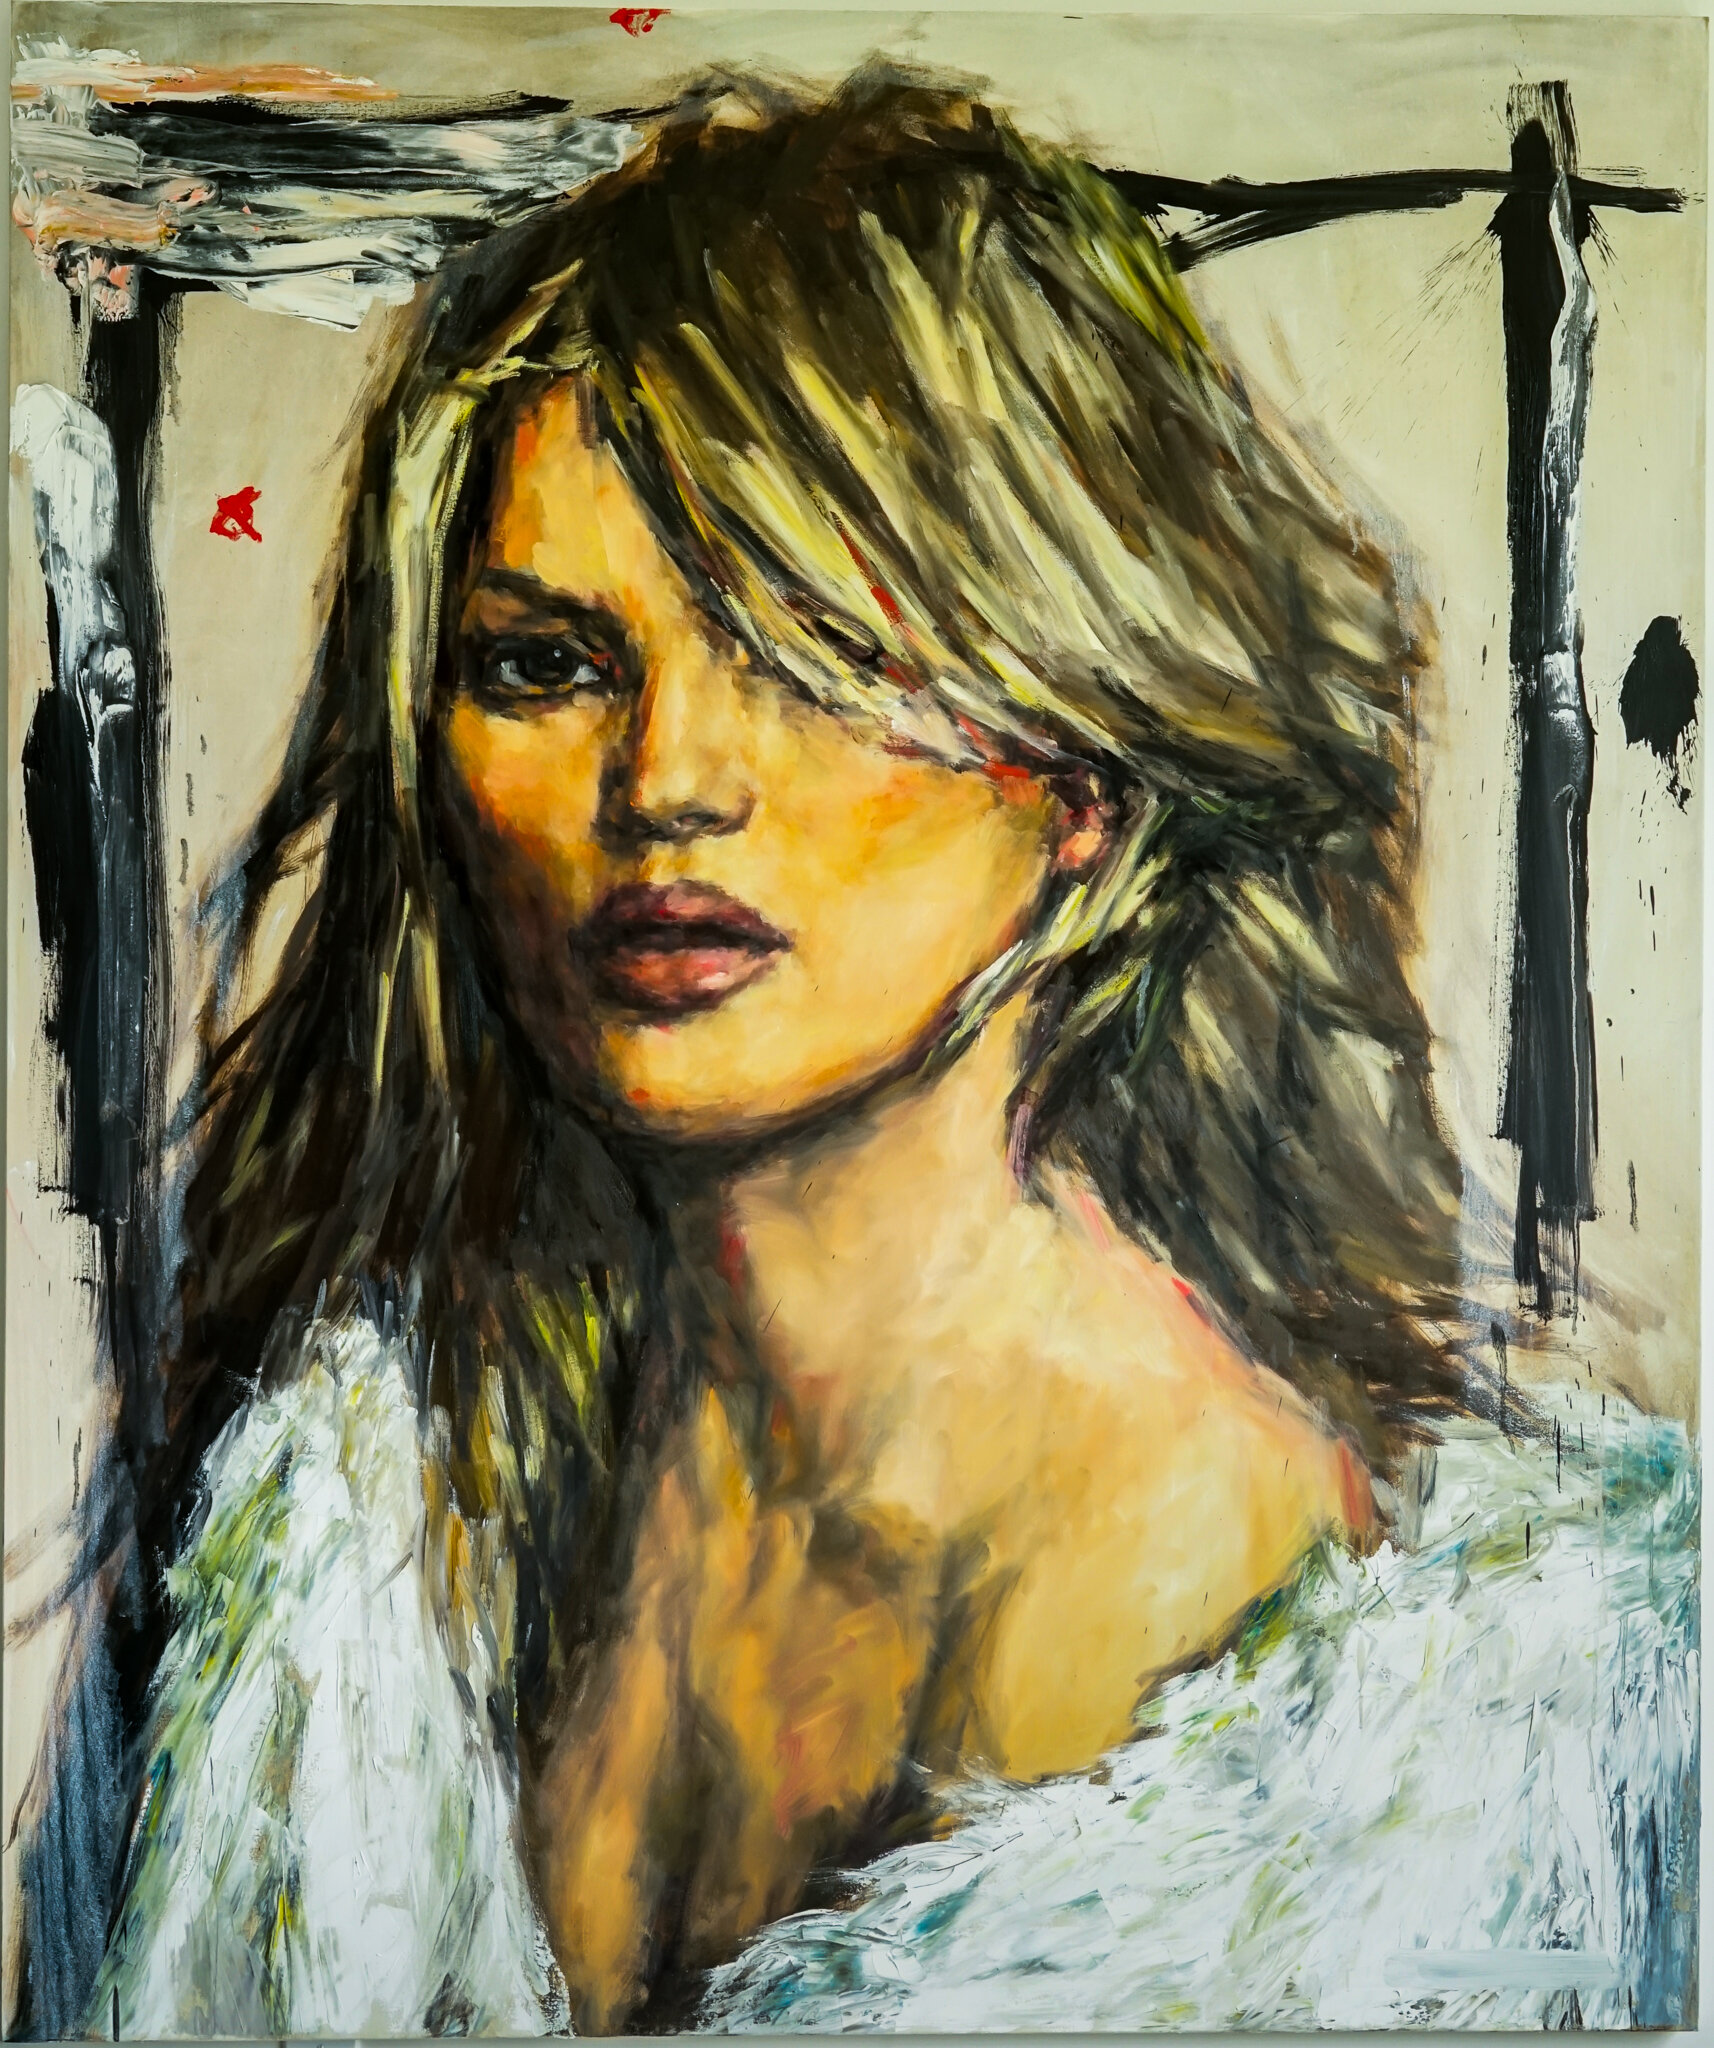 Kate in White Fur - 72 x 60, Oil and Acrylic on Canvas